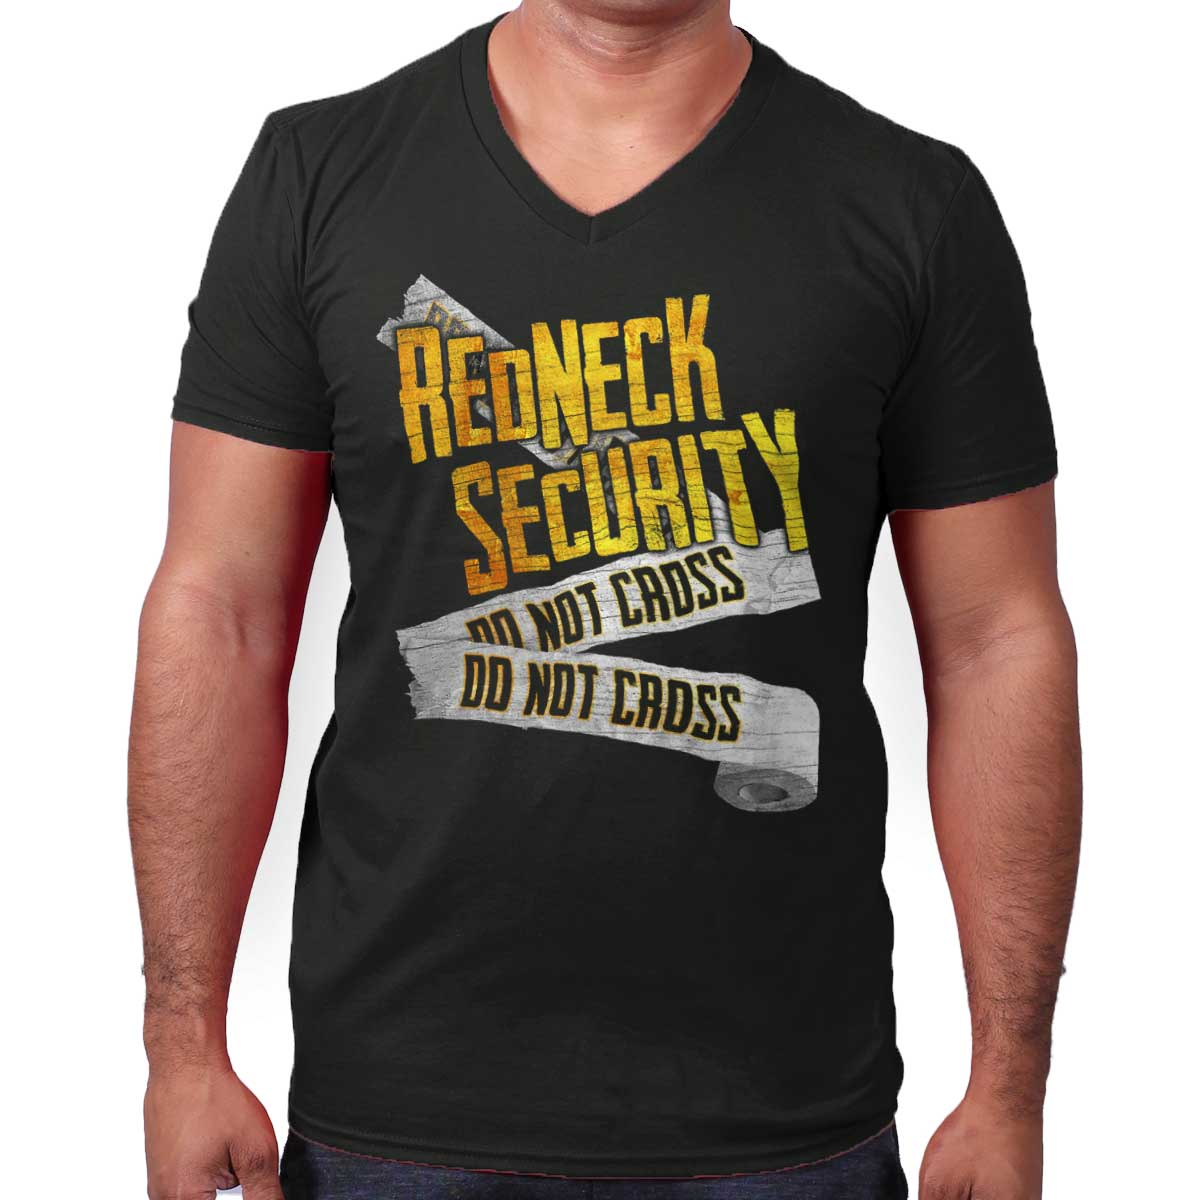 Redneck Security Not Cross Funny Shirt Cool Gift Idea Country V-Neck T-Shirt